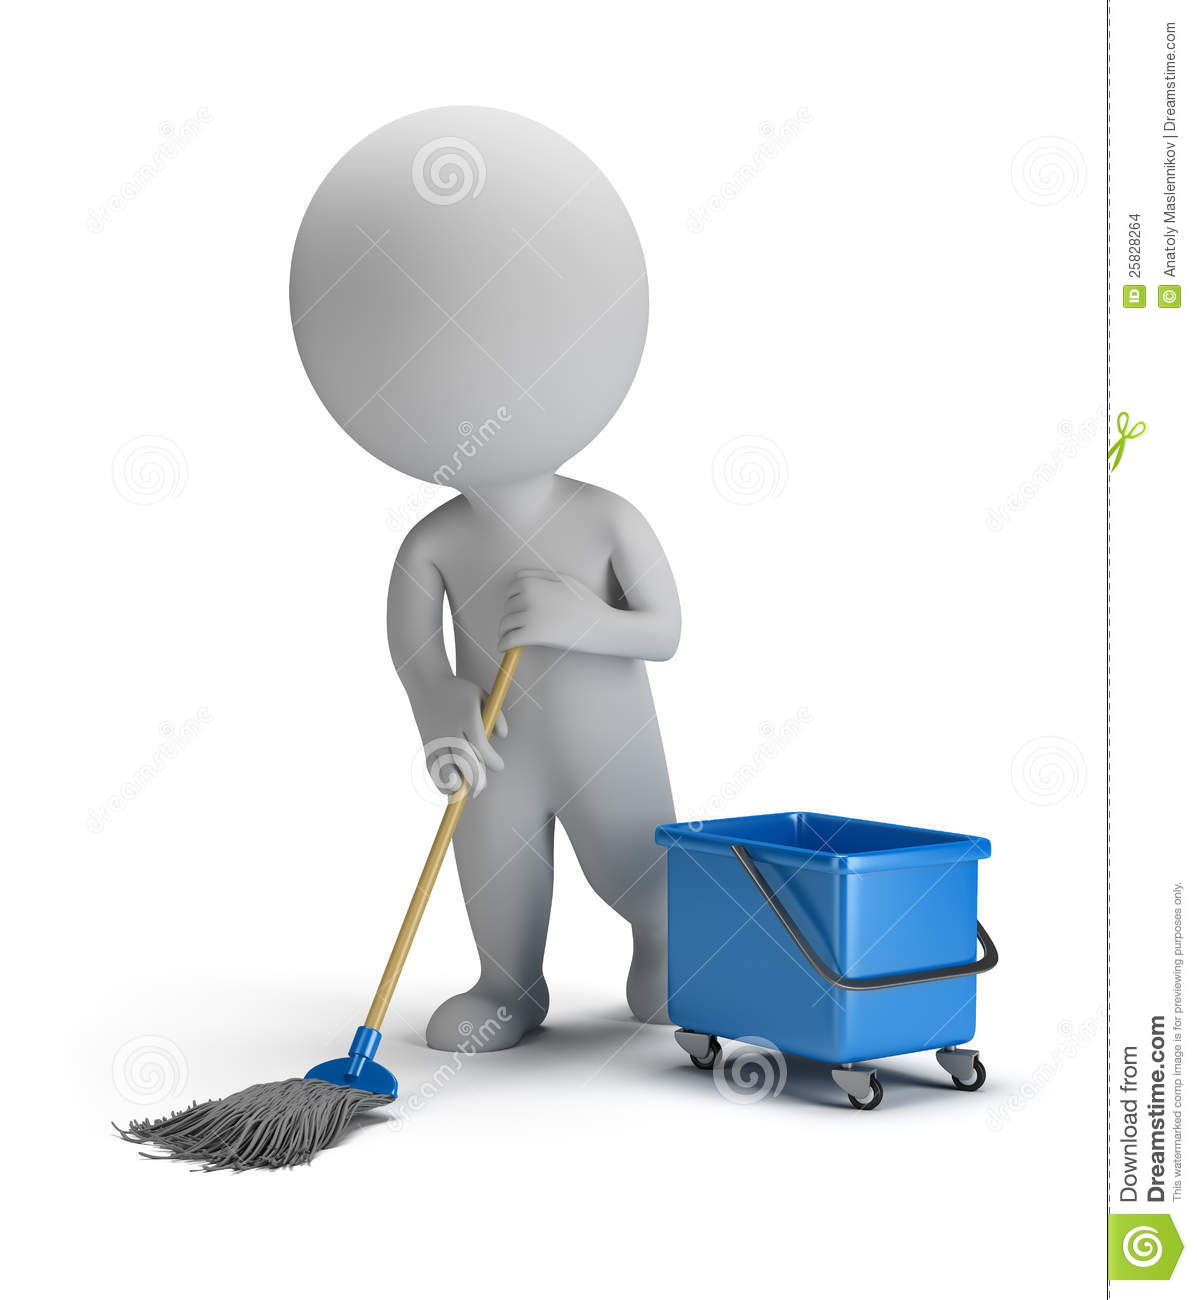 People Cleaning Services : D small people sweeper stock illustration